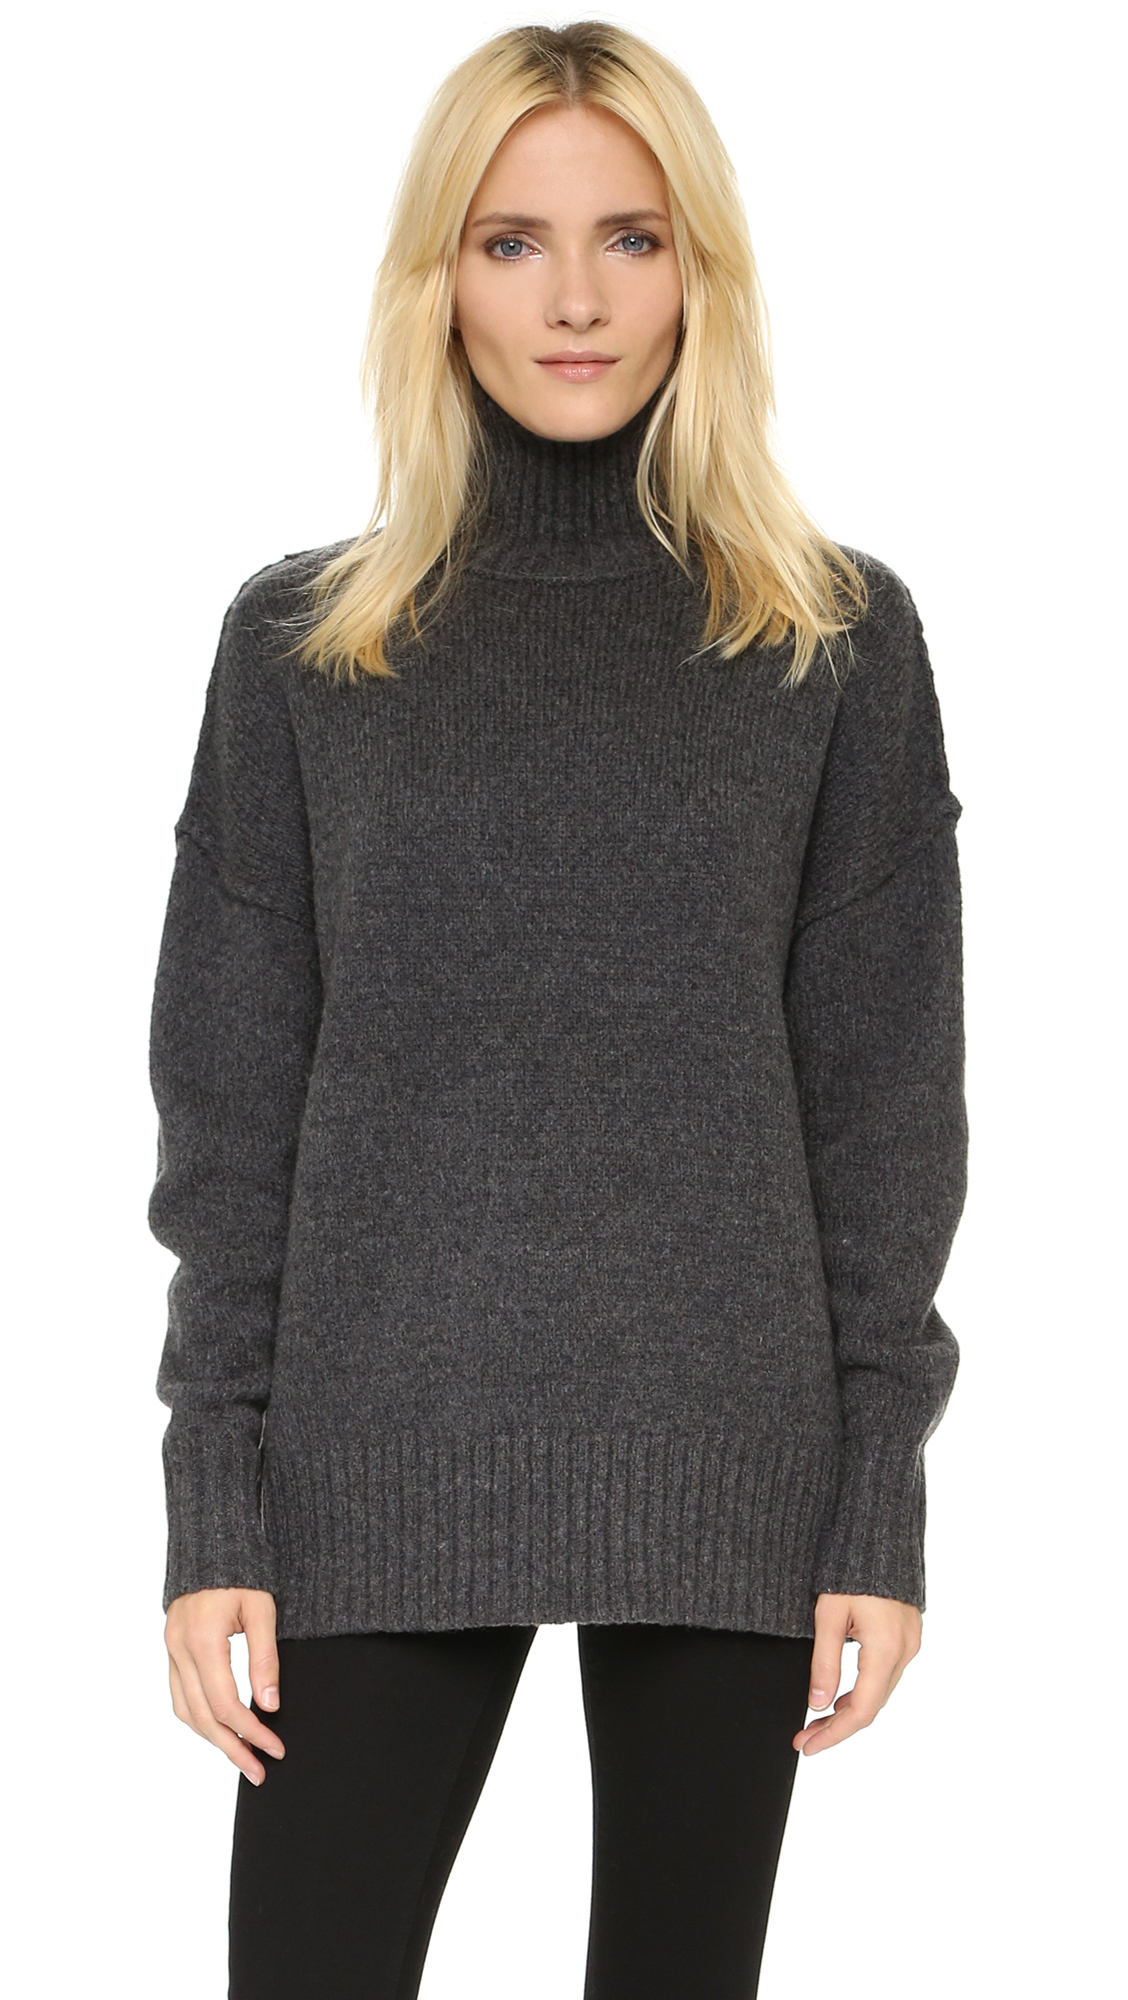 Nlst Oversize Turtleneck Sweater in Gray | Lyst